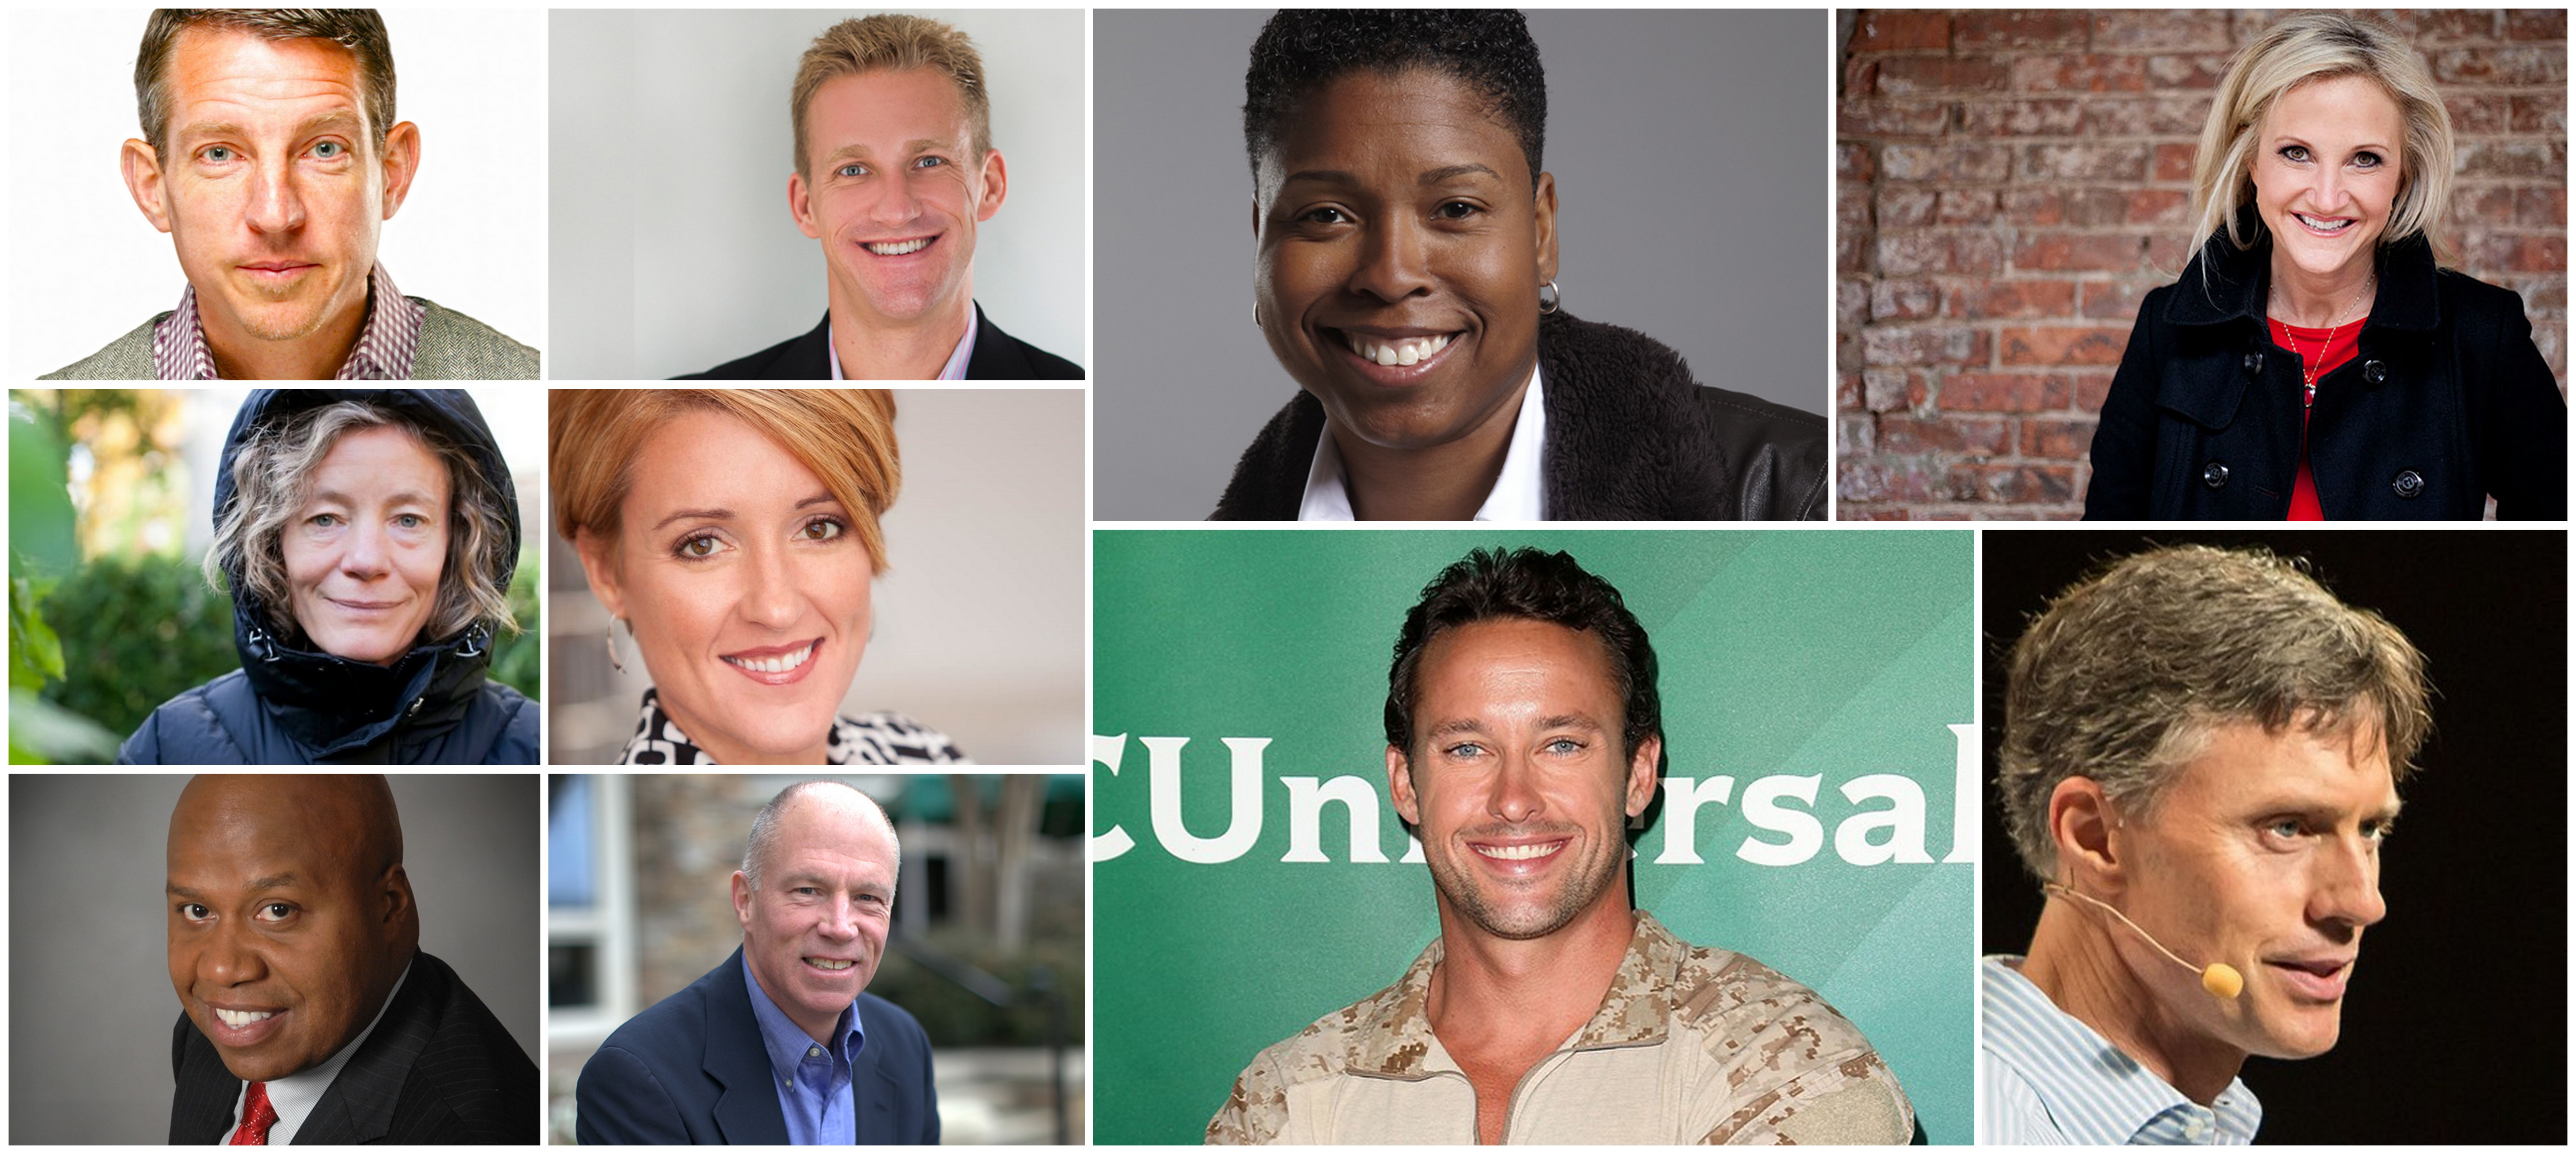 10 Highest Rated Speakers on Achieving Peak Performance